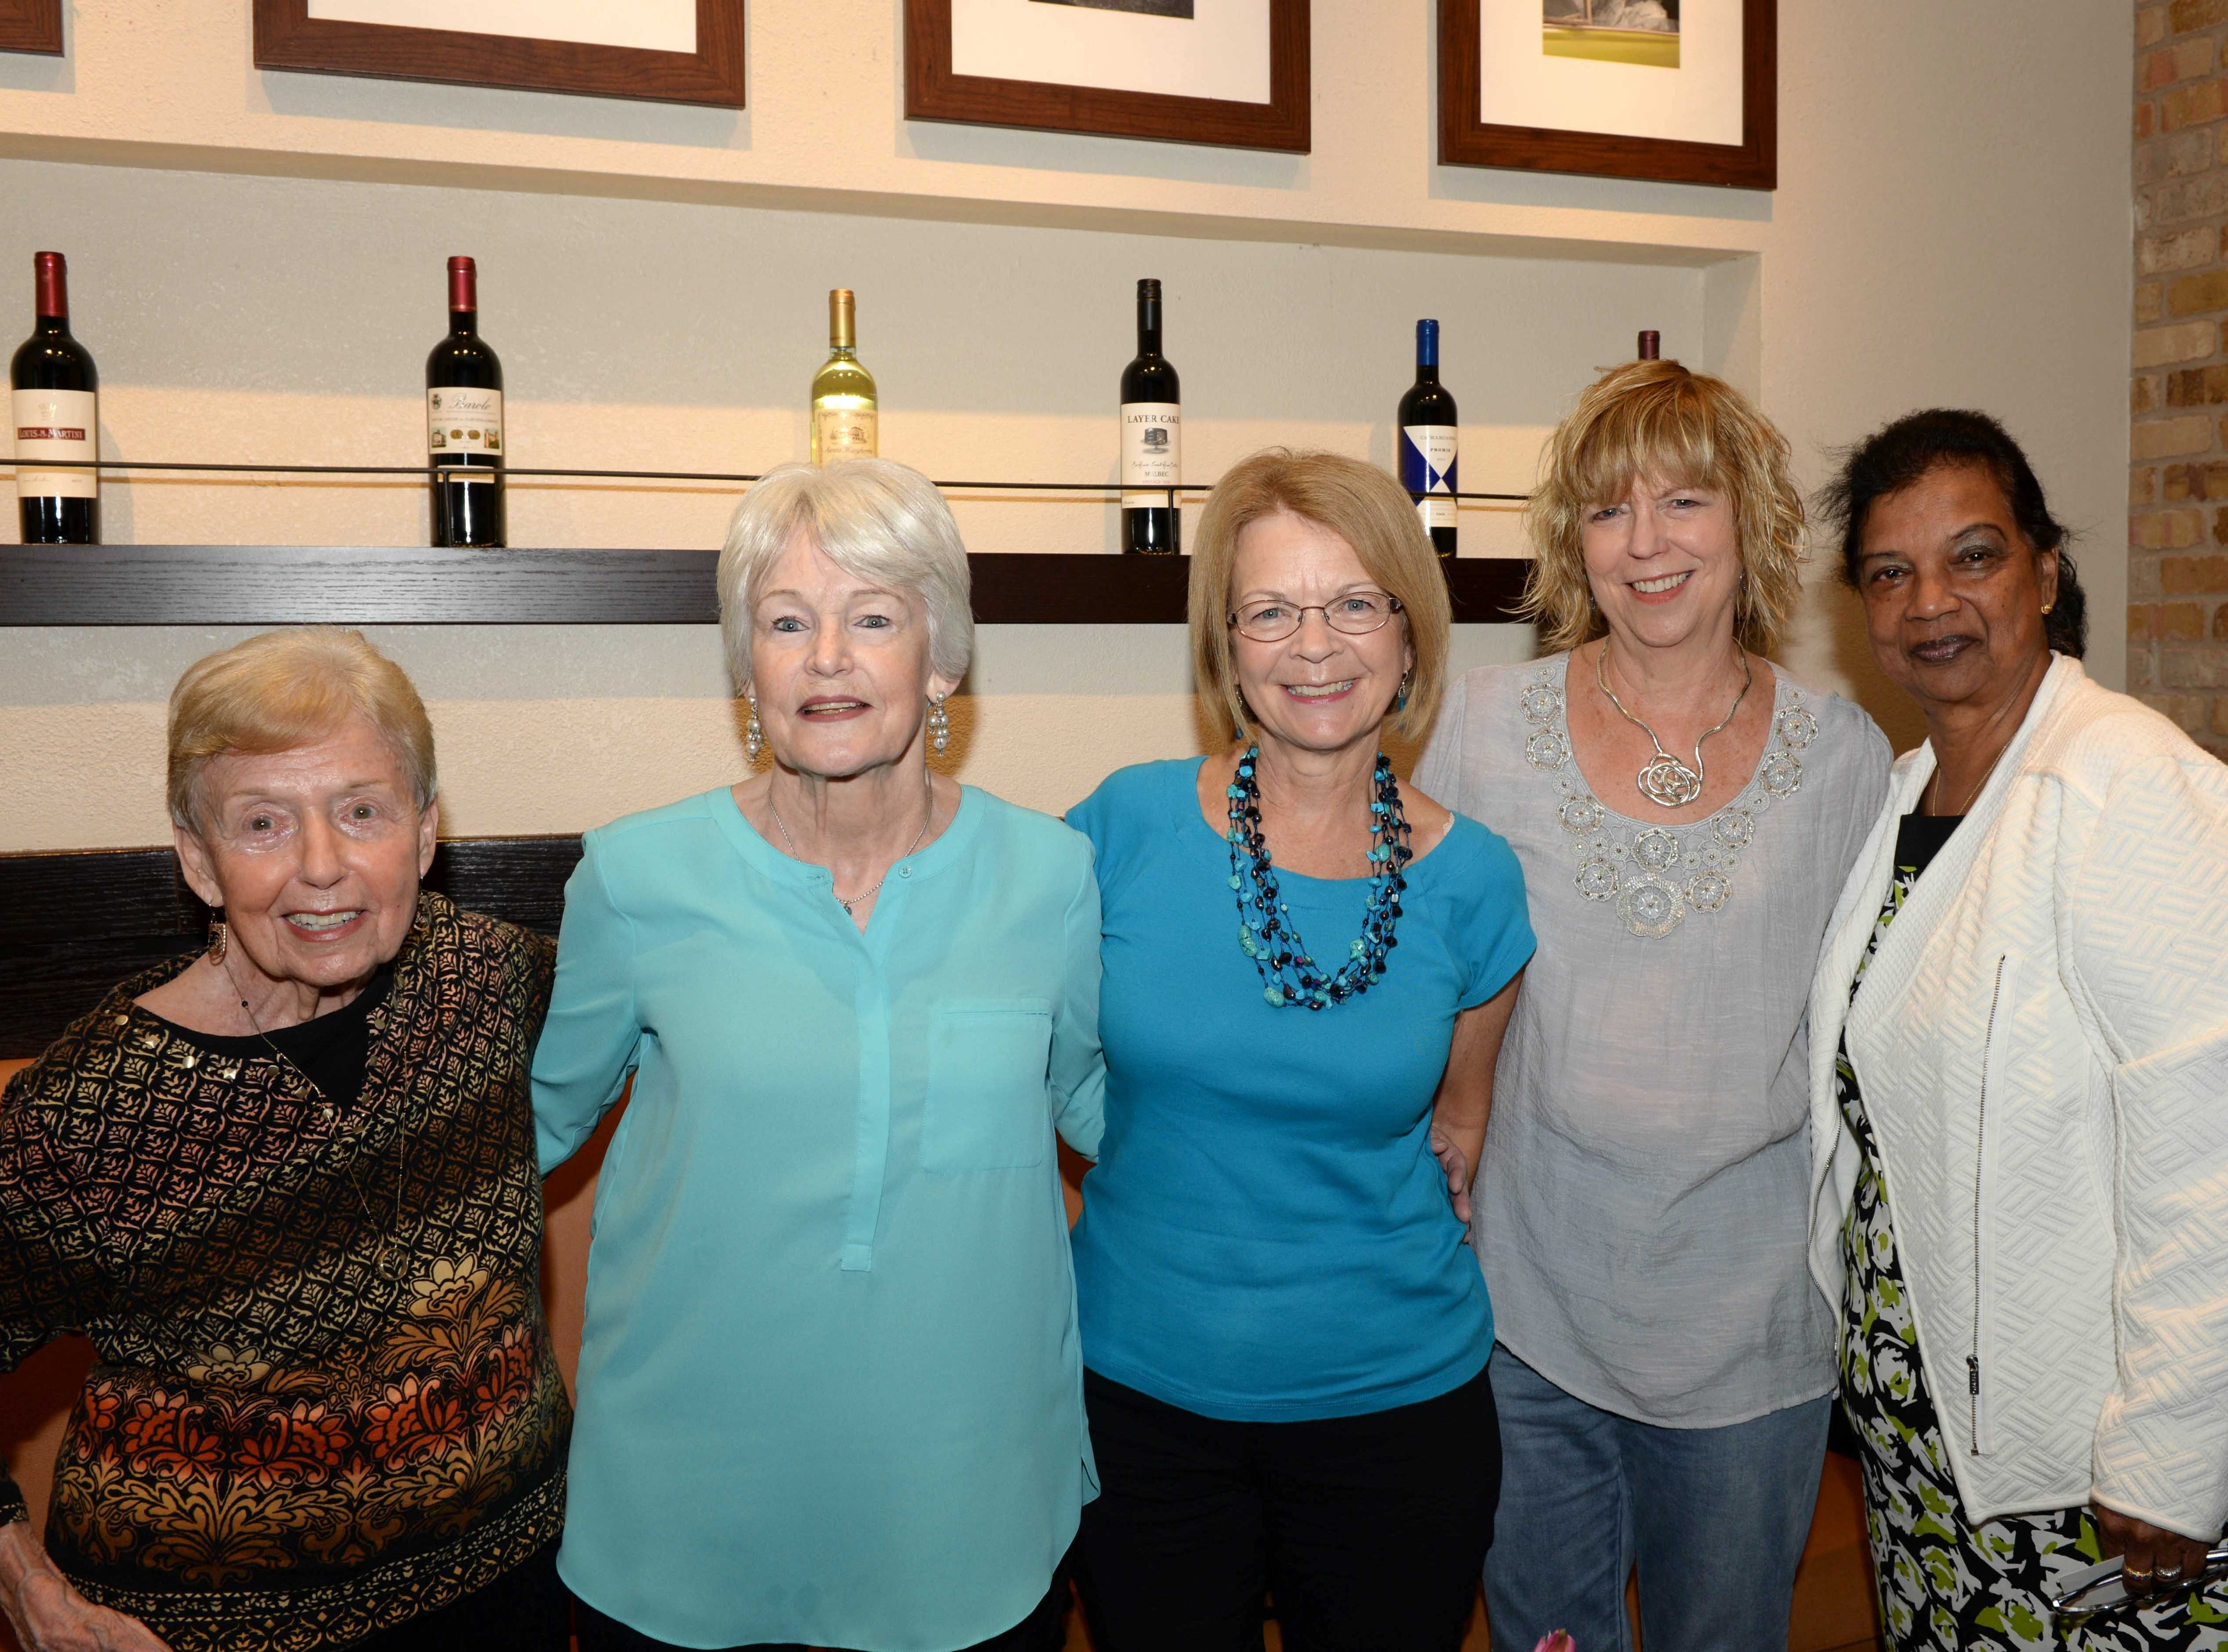 Greta Tuning, left, Charlene Fisher, Arlo Koletzky, Vicky Casabo and Sabina Sukhai at Carrabba's Italian Grill in St. Lucie West.